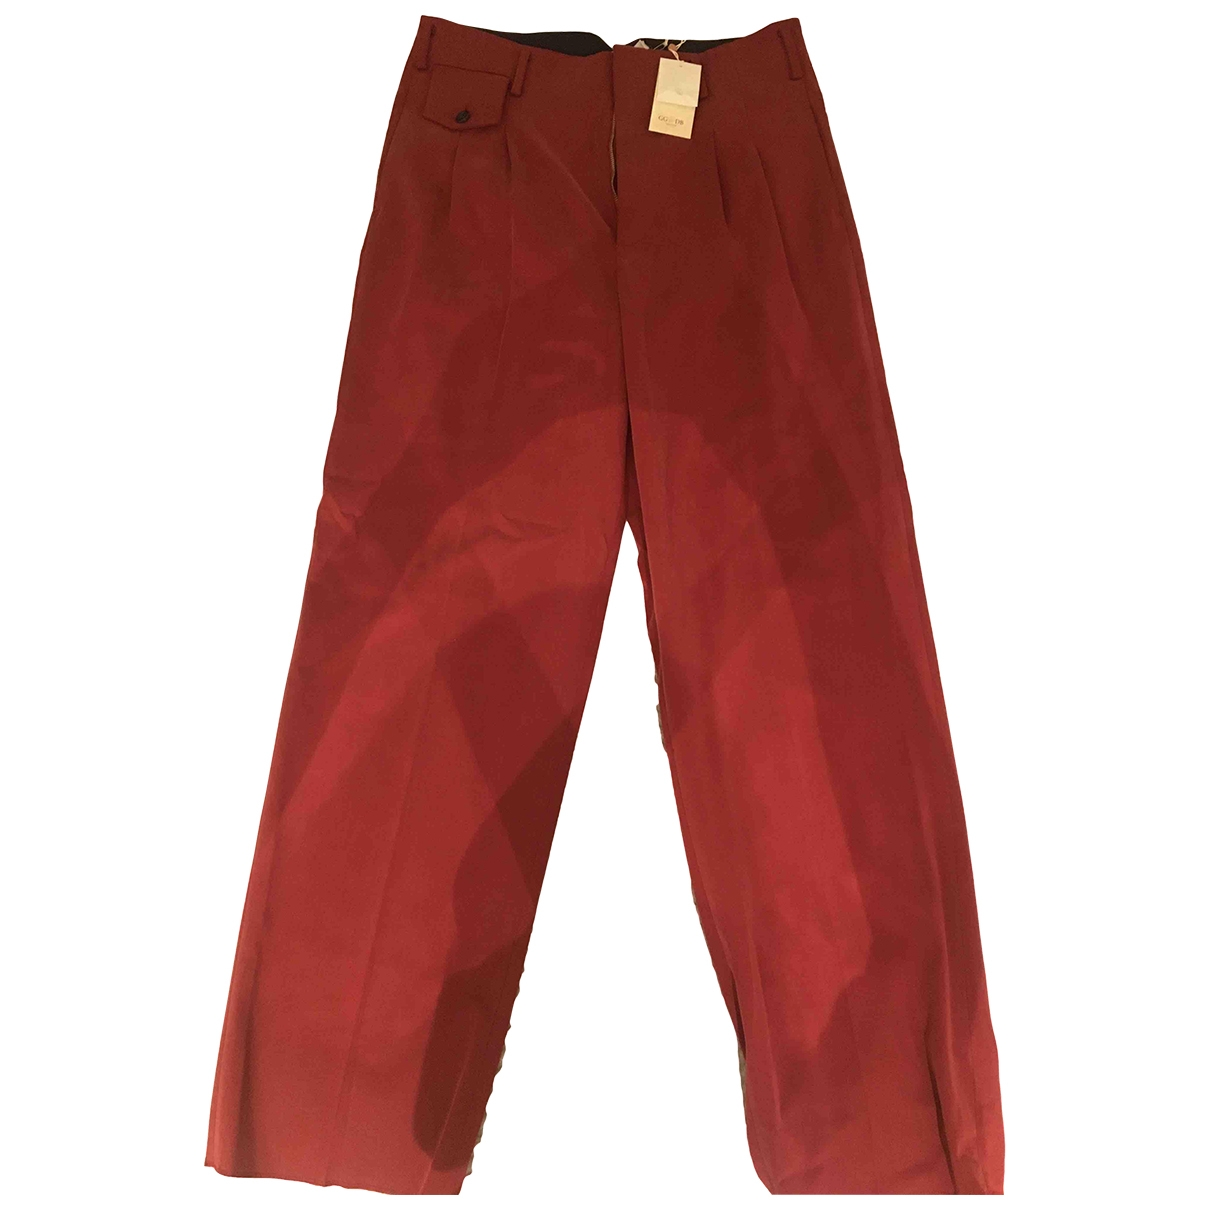 Golden Goose \N Red Cotton Trousers for Women M International